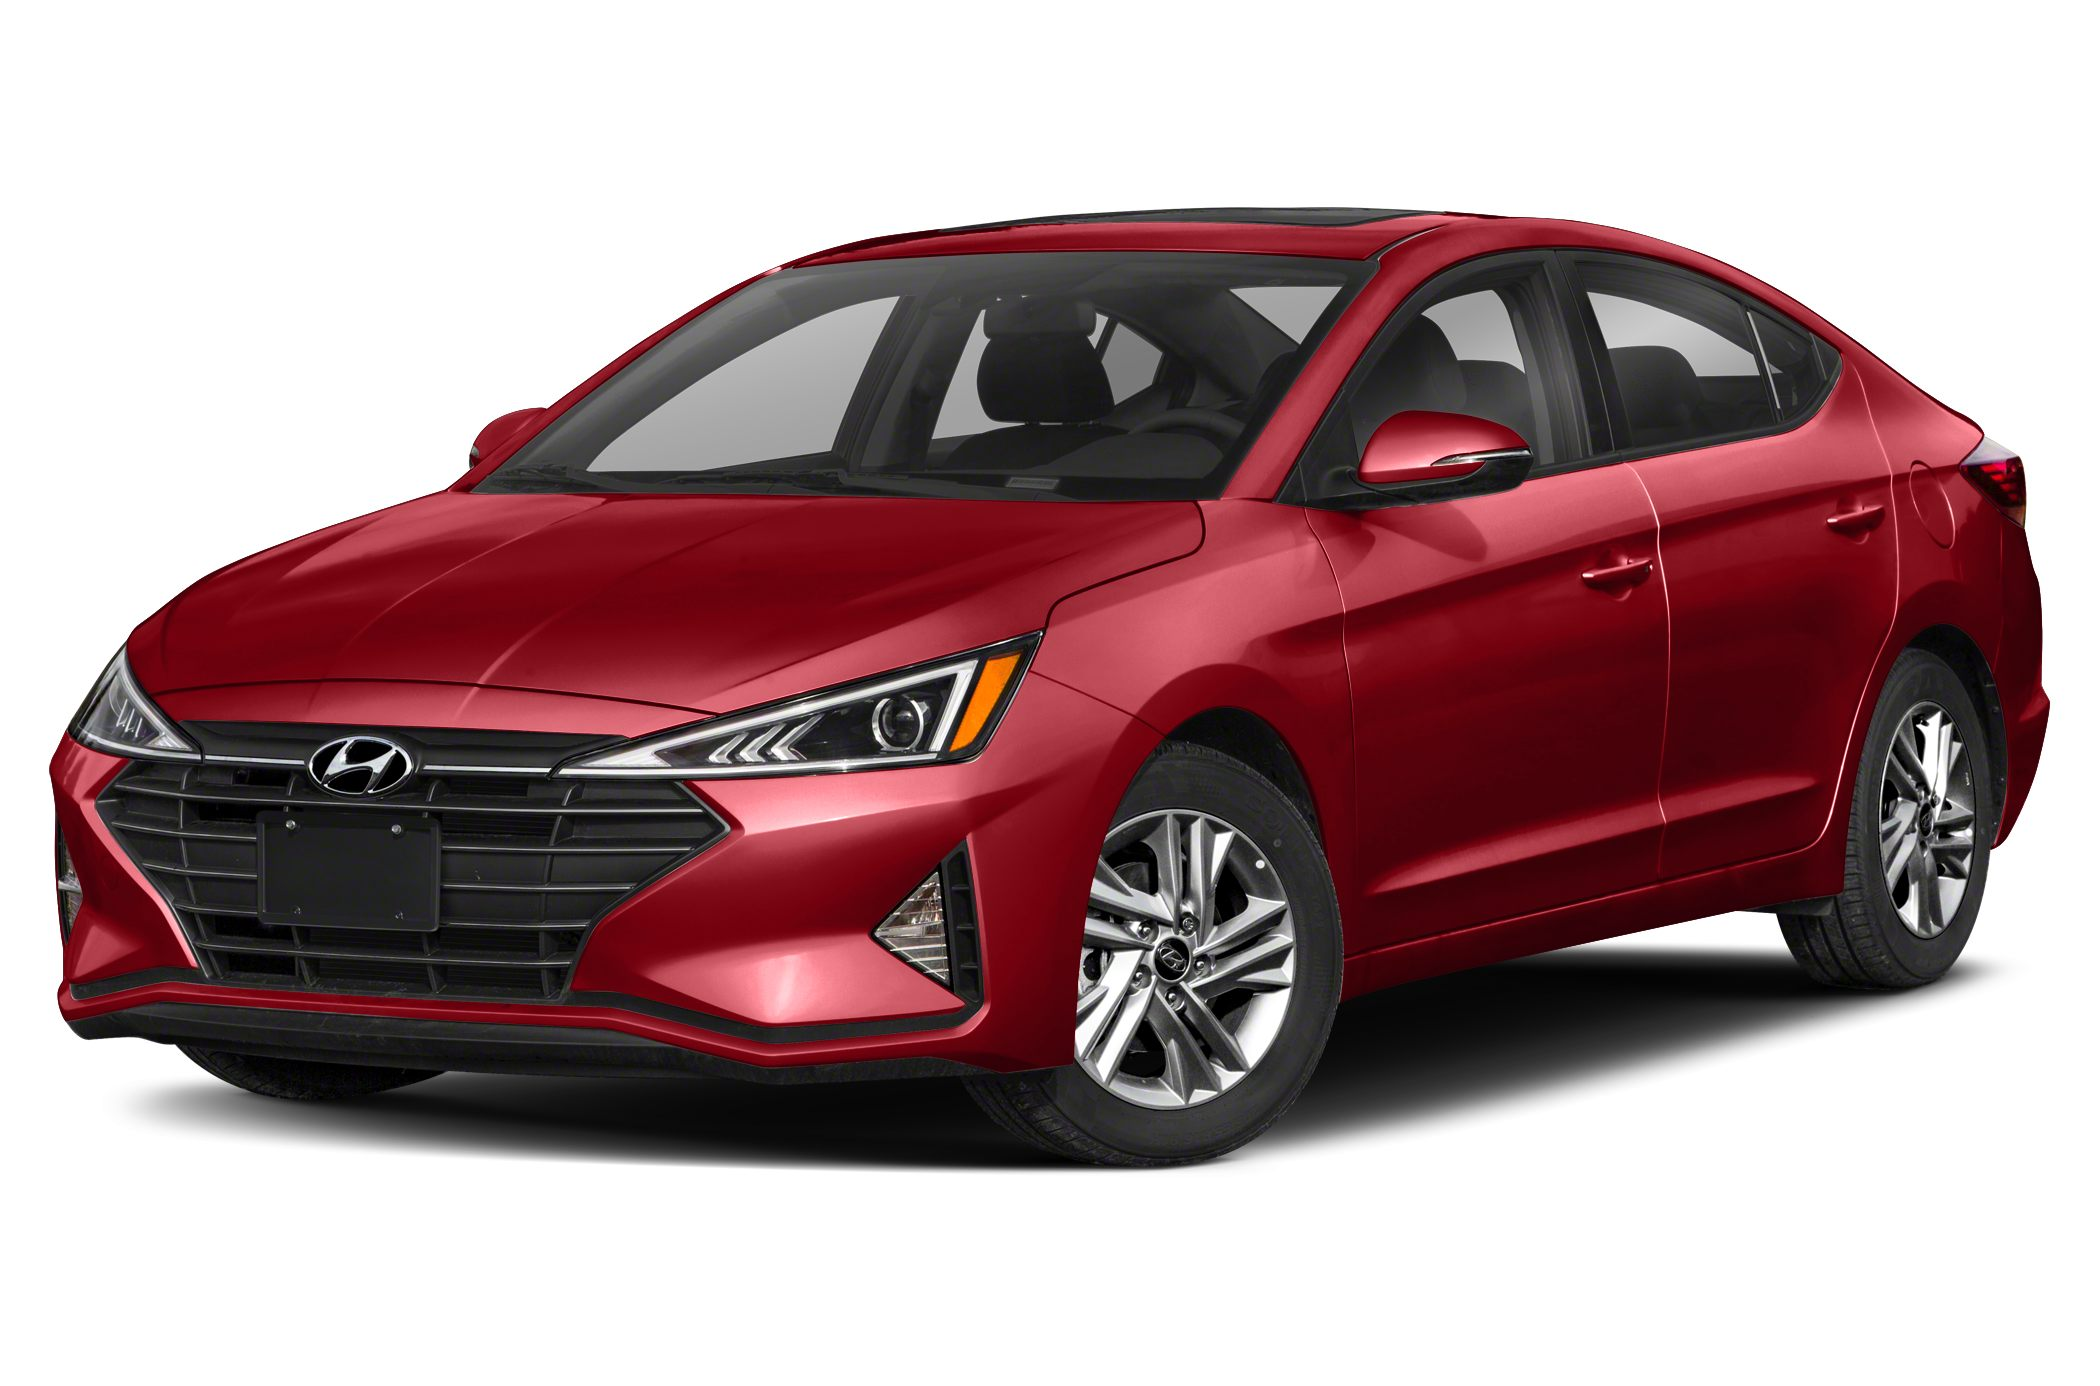 Hyundai Canada Incentives for the new 2019 Hyundai Elantra Sedan Superstructure and Coupe in Milton, Toronto, and the GTA